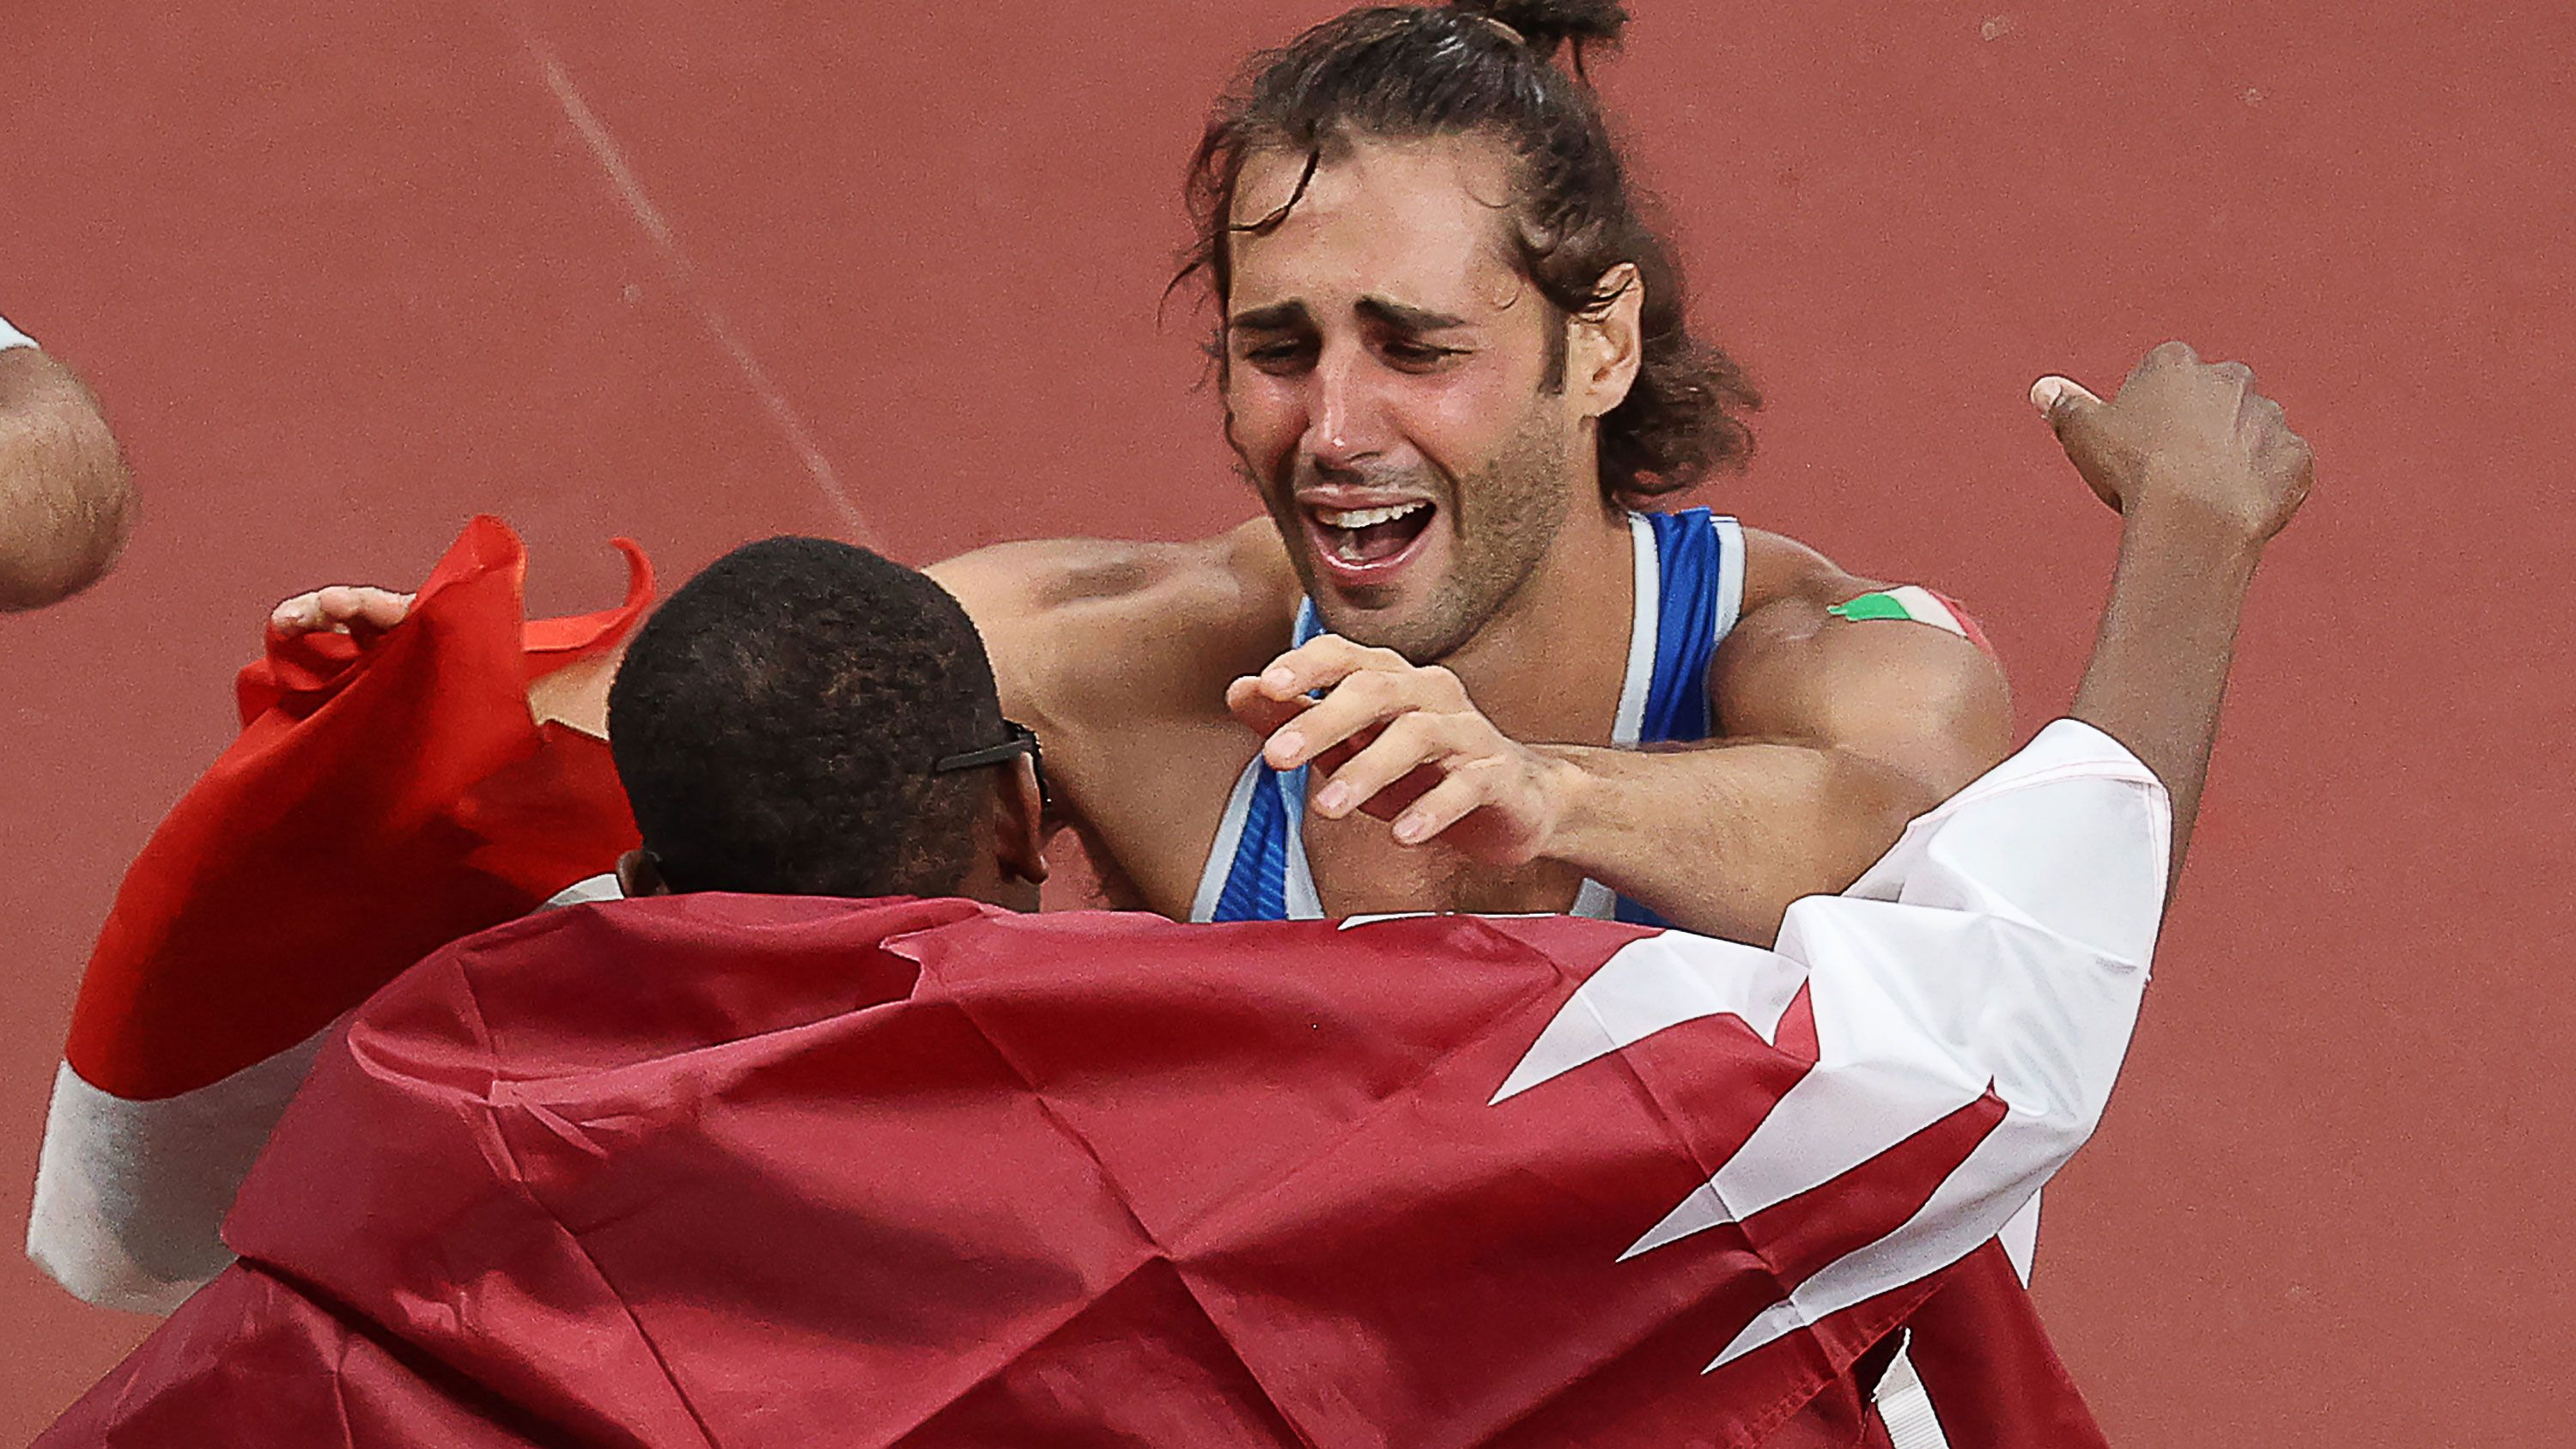 Mutaz Essa Barshim of Qatar and Italy's Gianmarco Tamberi embrace after deciding to share gold.